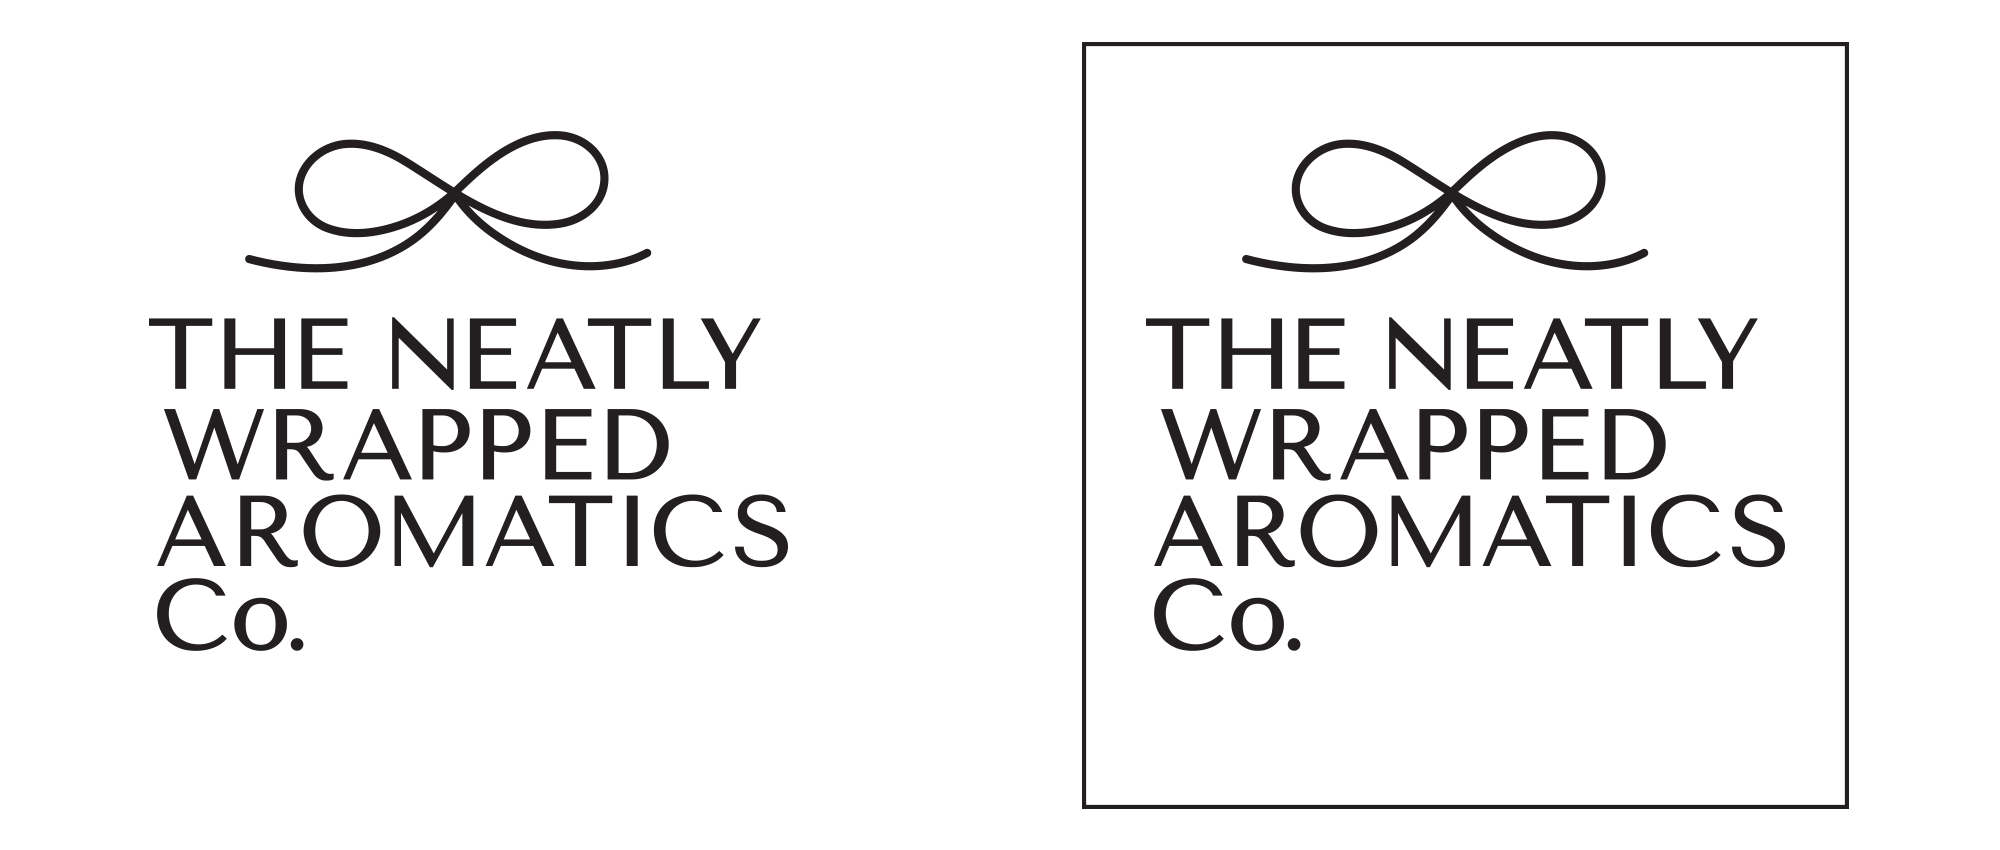 candle-branding-logo-design-glasgow-scotland-marketing-walnut-wasp-neatly-wrapped-004.png